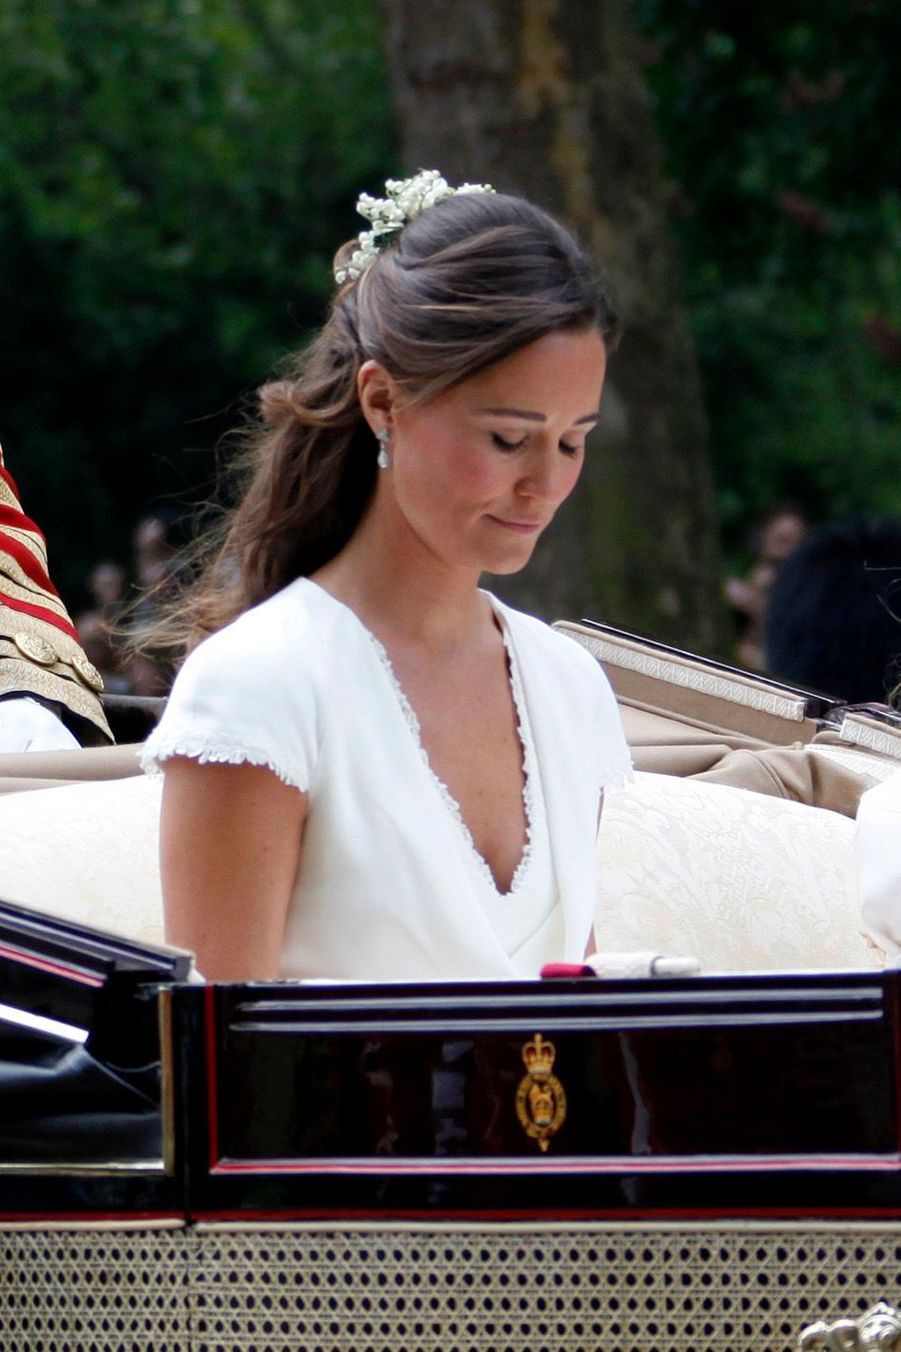 Pippa Middleton Au Mariage De Sa Soeur Kate Middleton Avec Le Prince William, Le 29 Avril 2011 À Londres 32